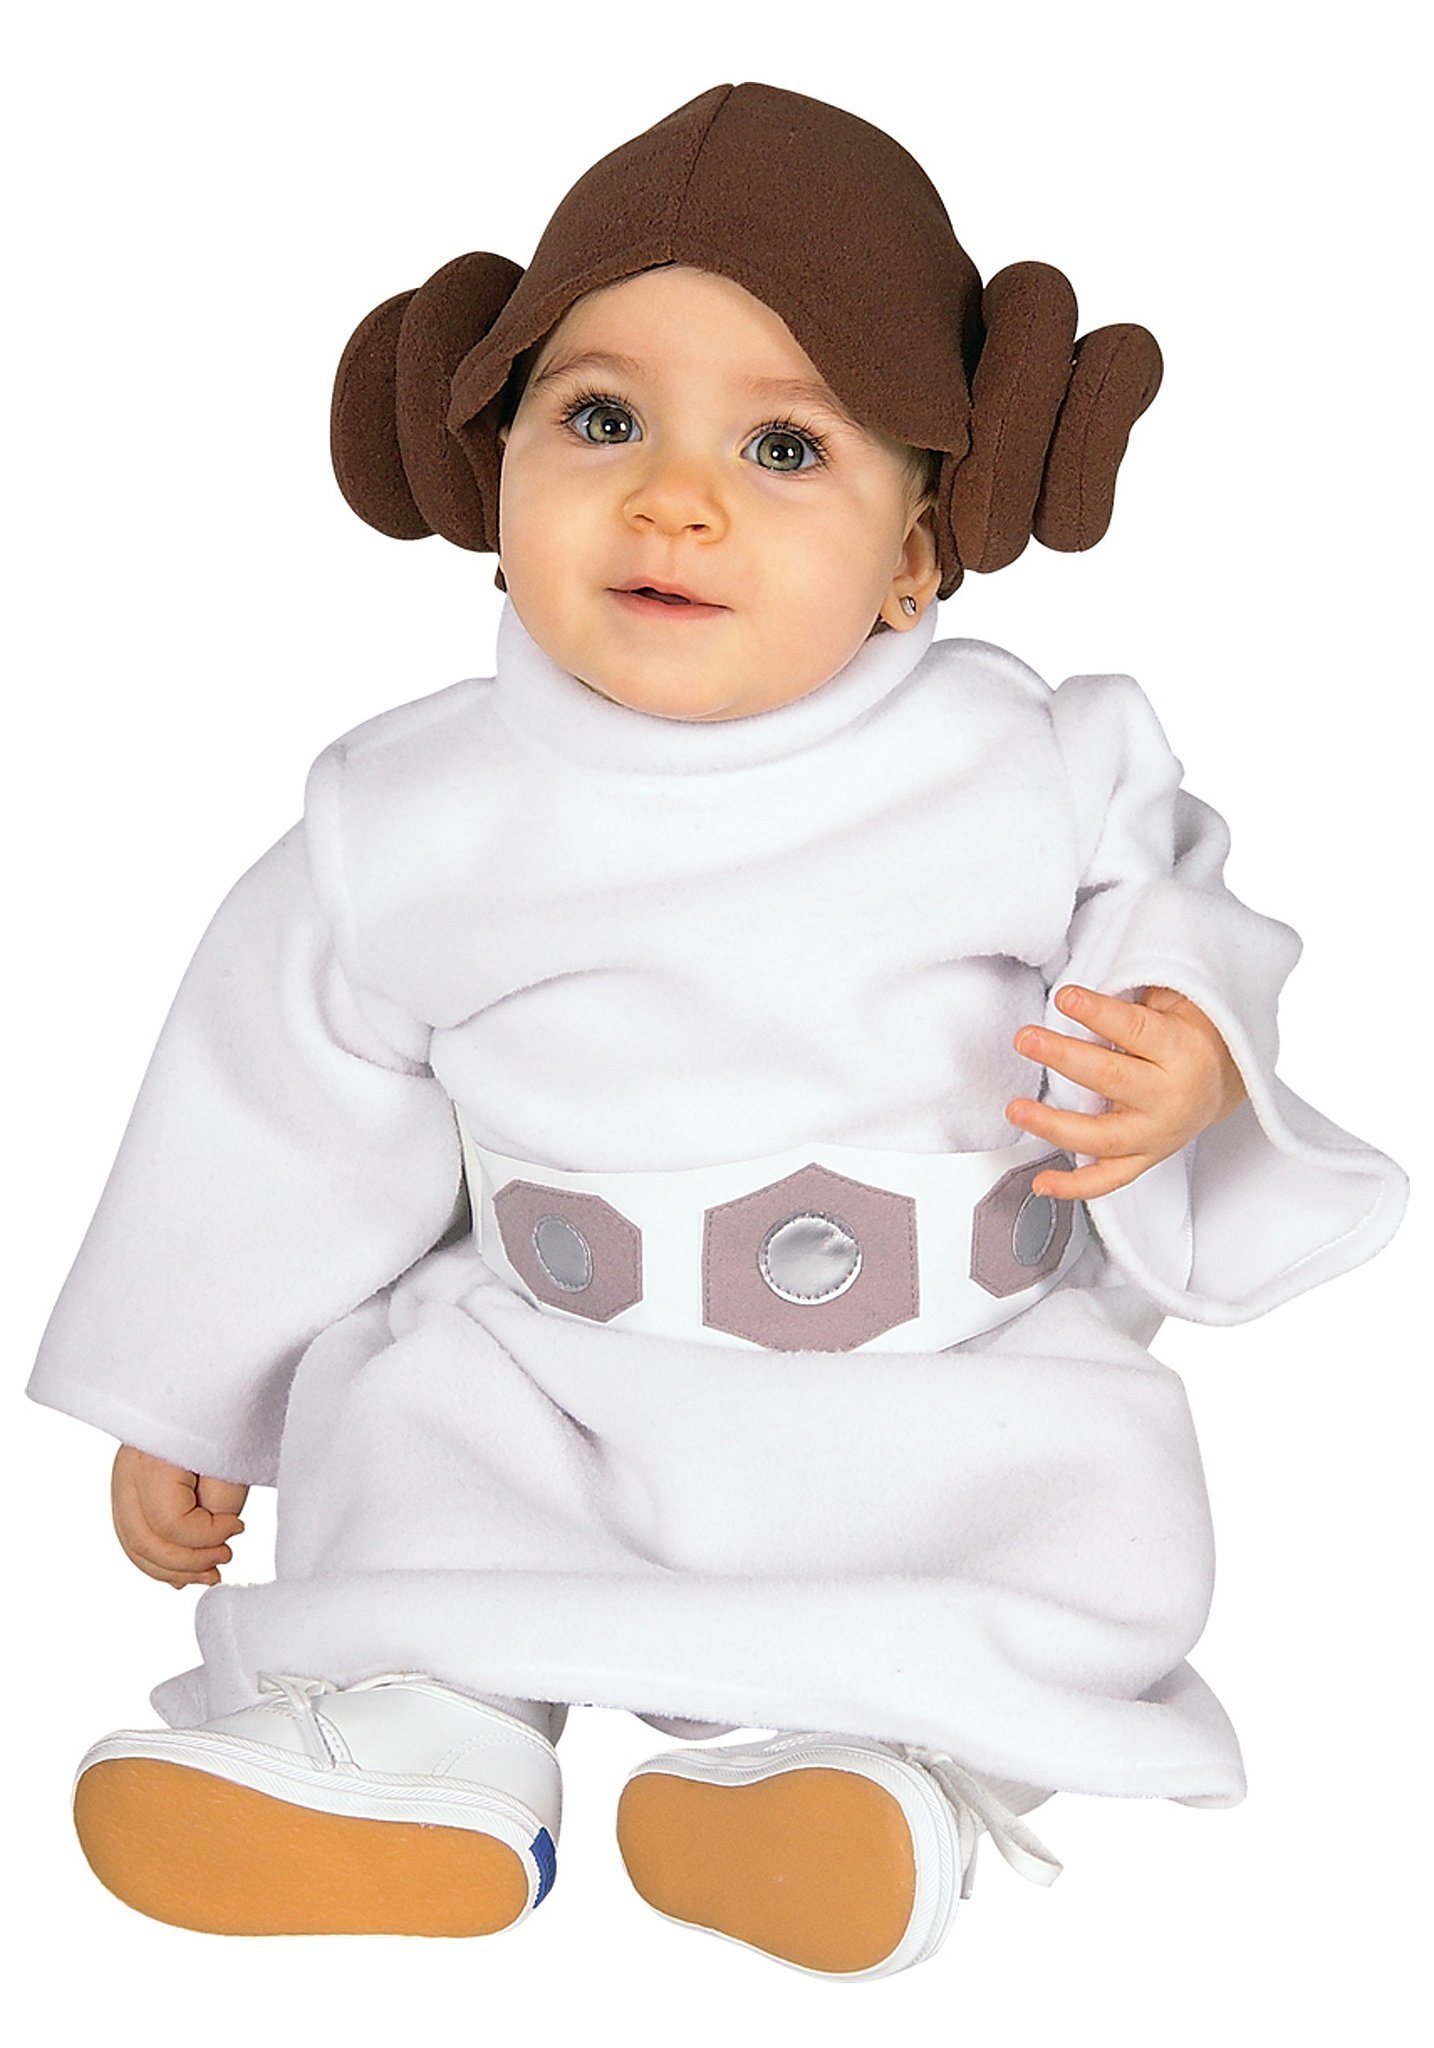 Princess Leia | Baby's First Halloween: 26 Cute Costume ...